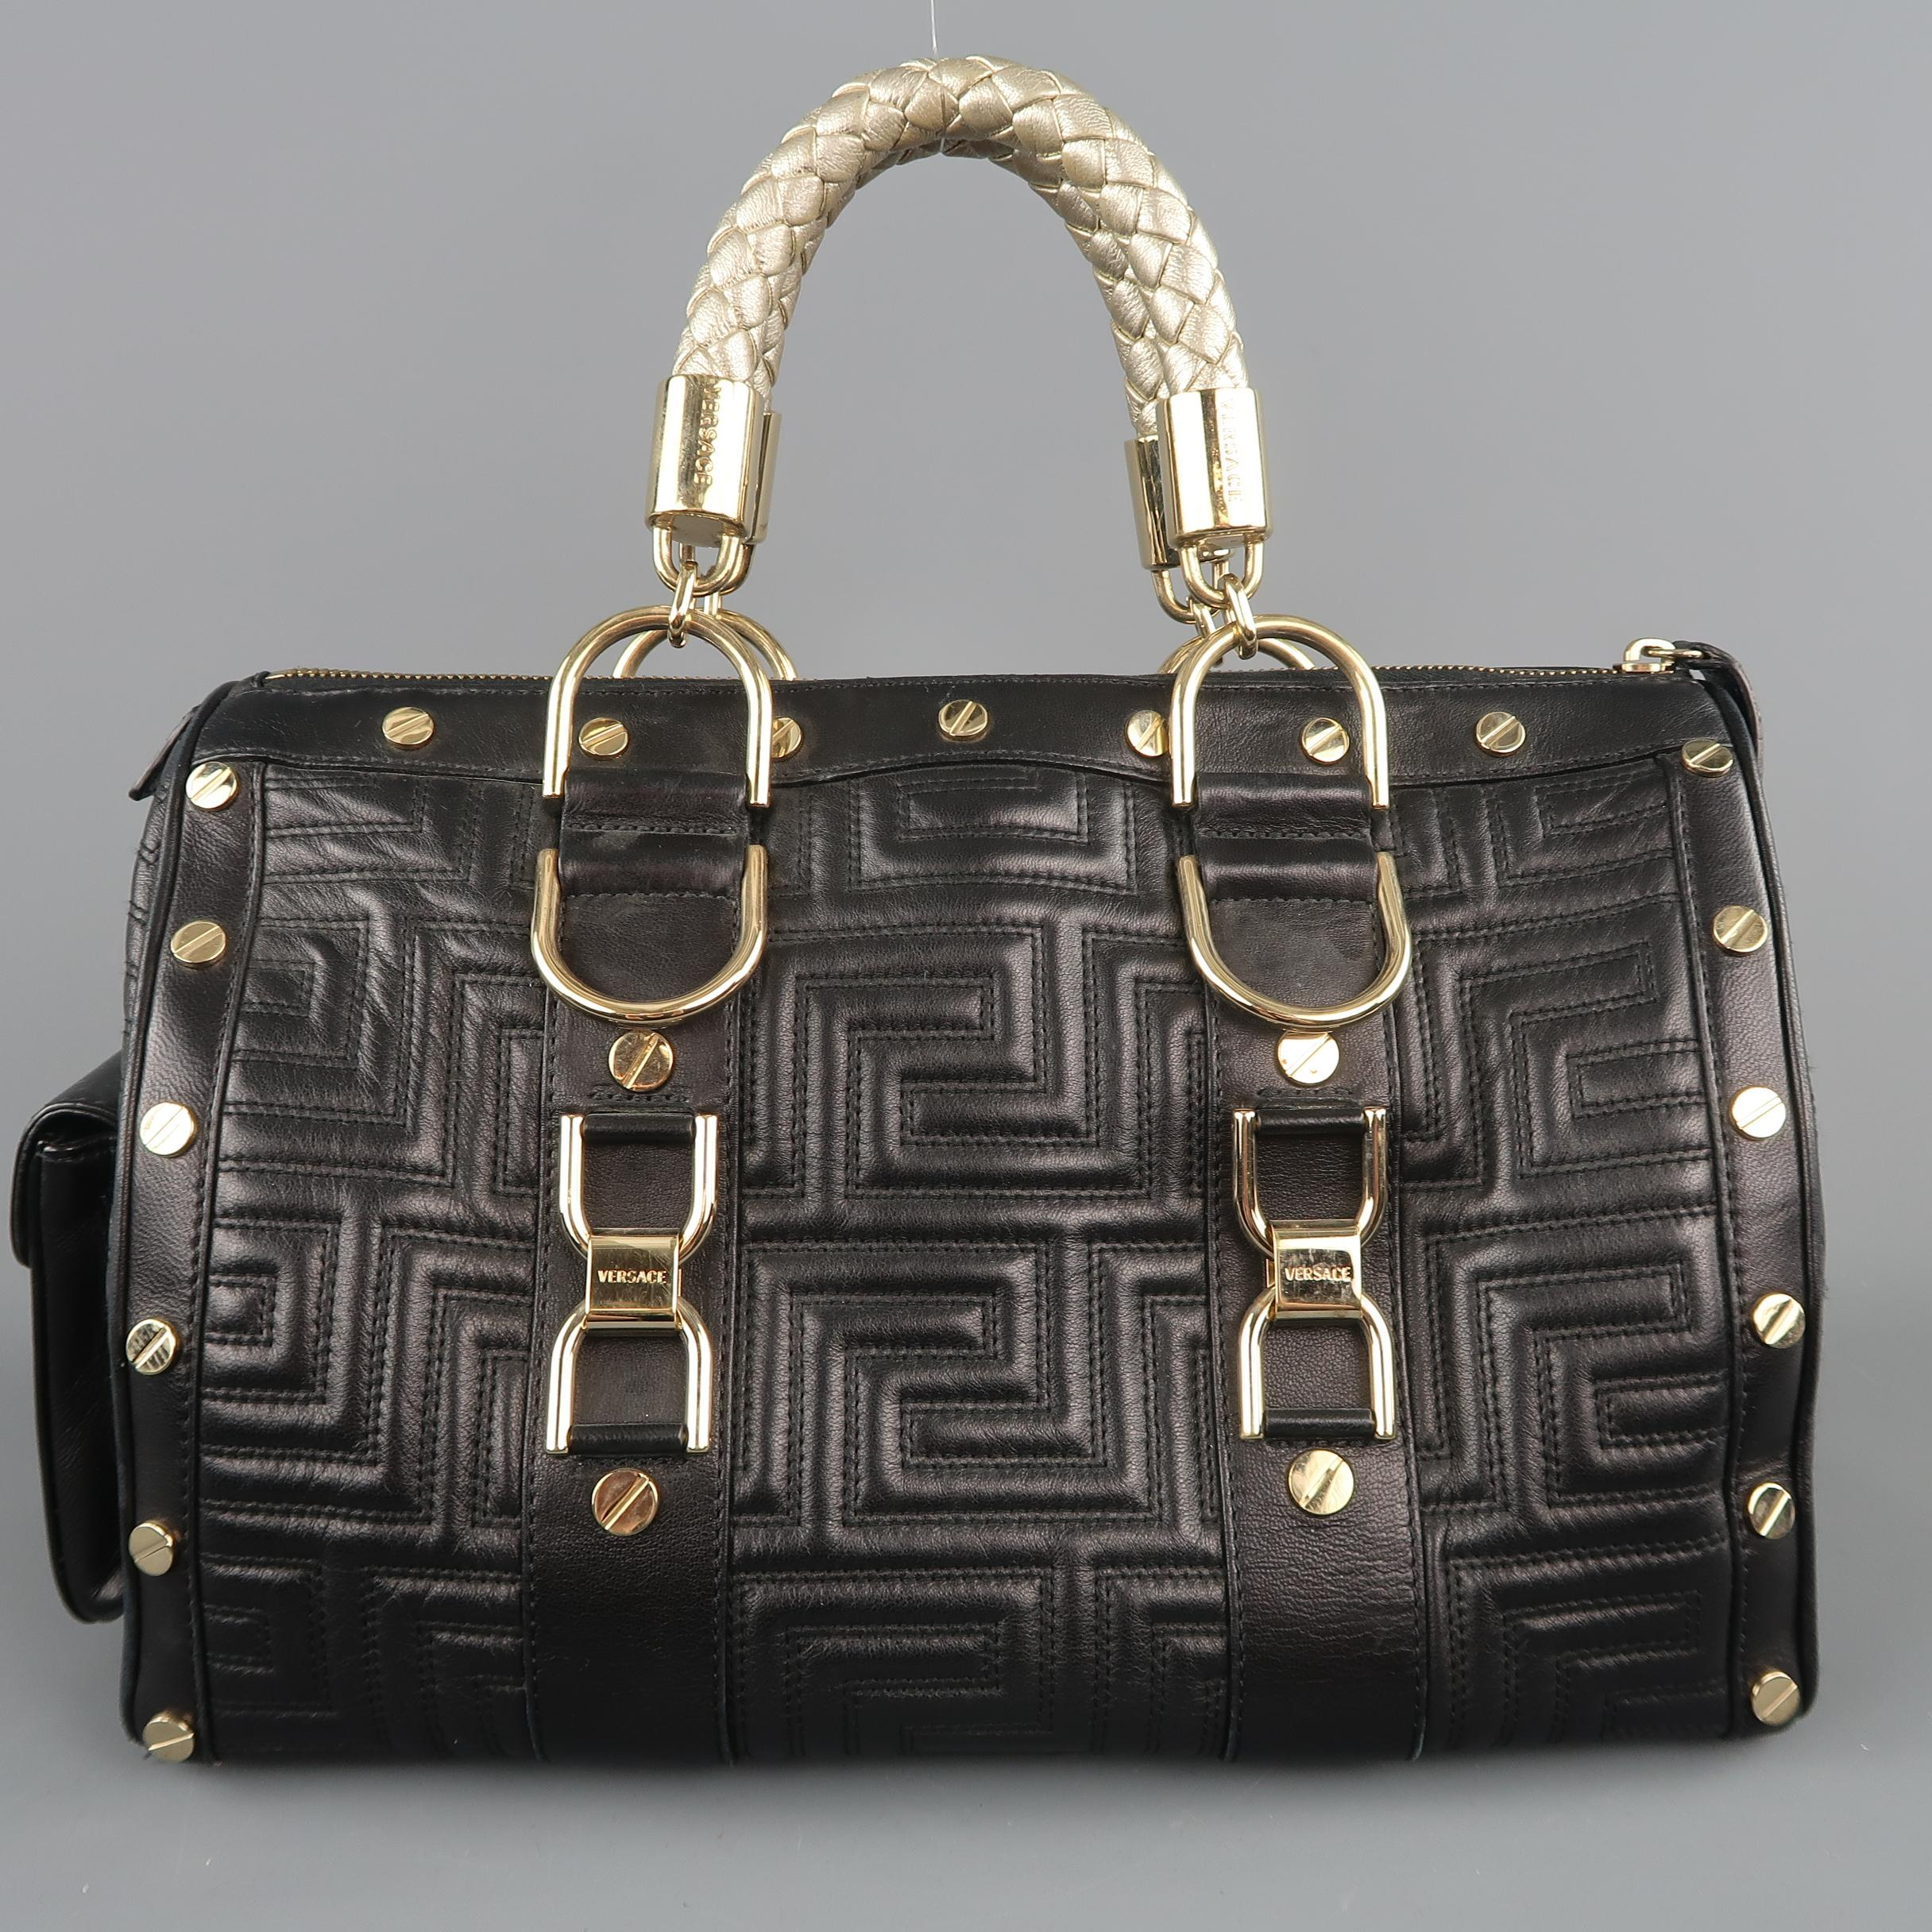 64324fed1204 VERSACE Black and Gold Studded Leather Greca Quilted Tote Handbag For Sale  at 1stdibs